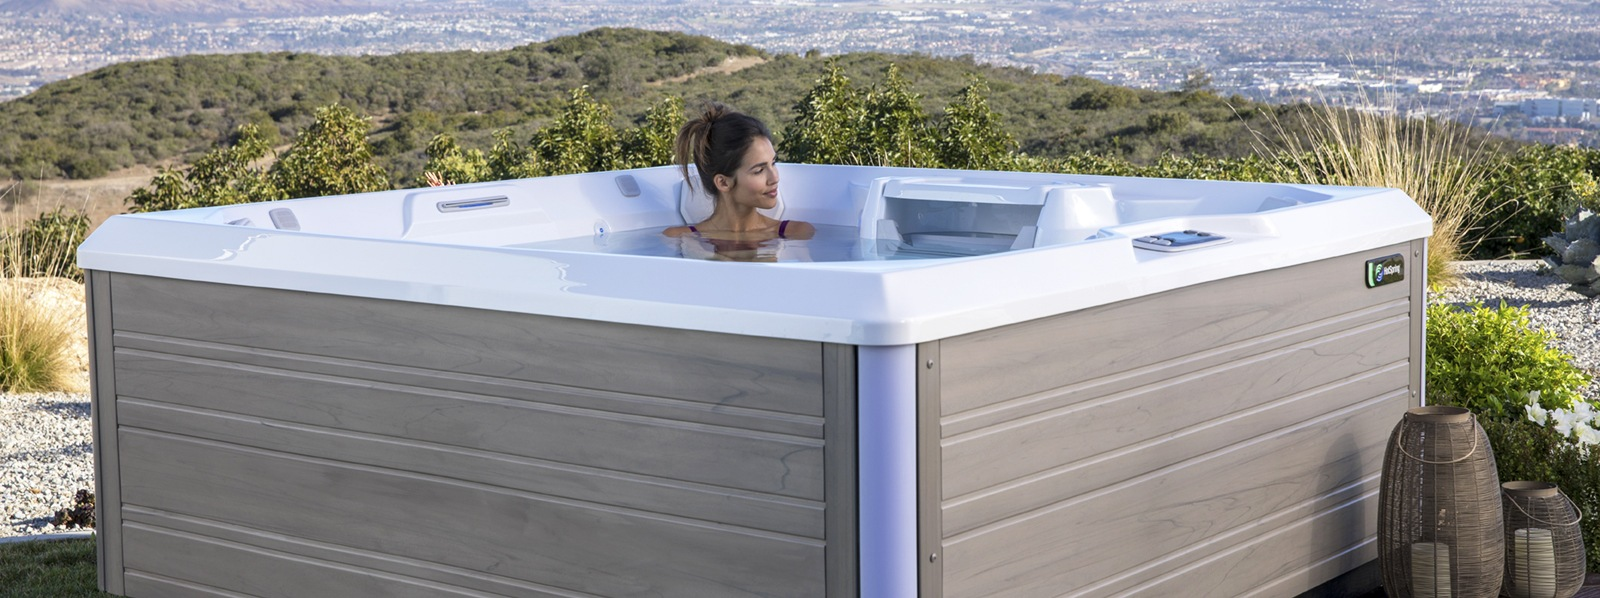 Jacuzzi Pool Preise Beam Hot Spring Spas